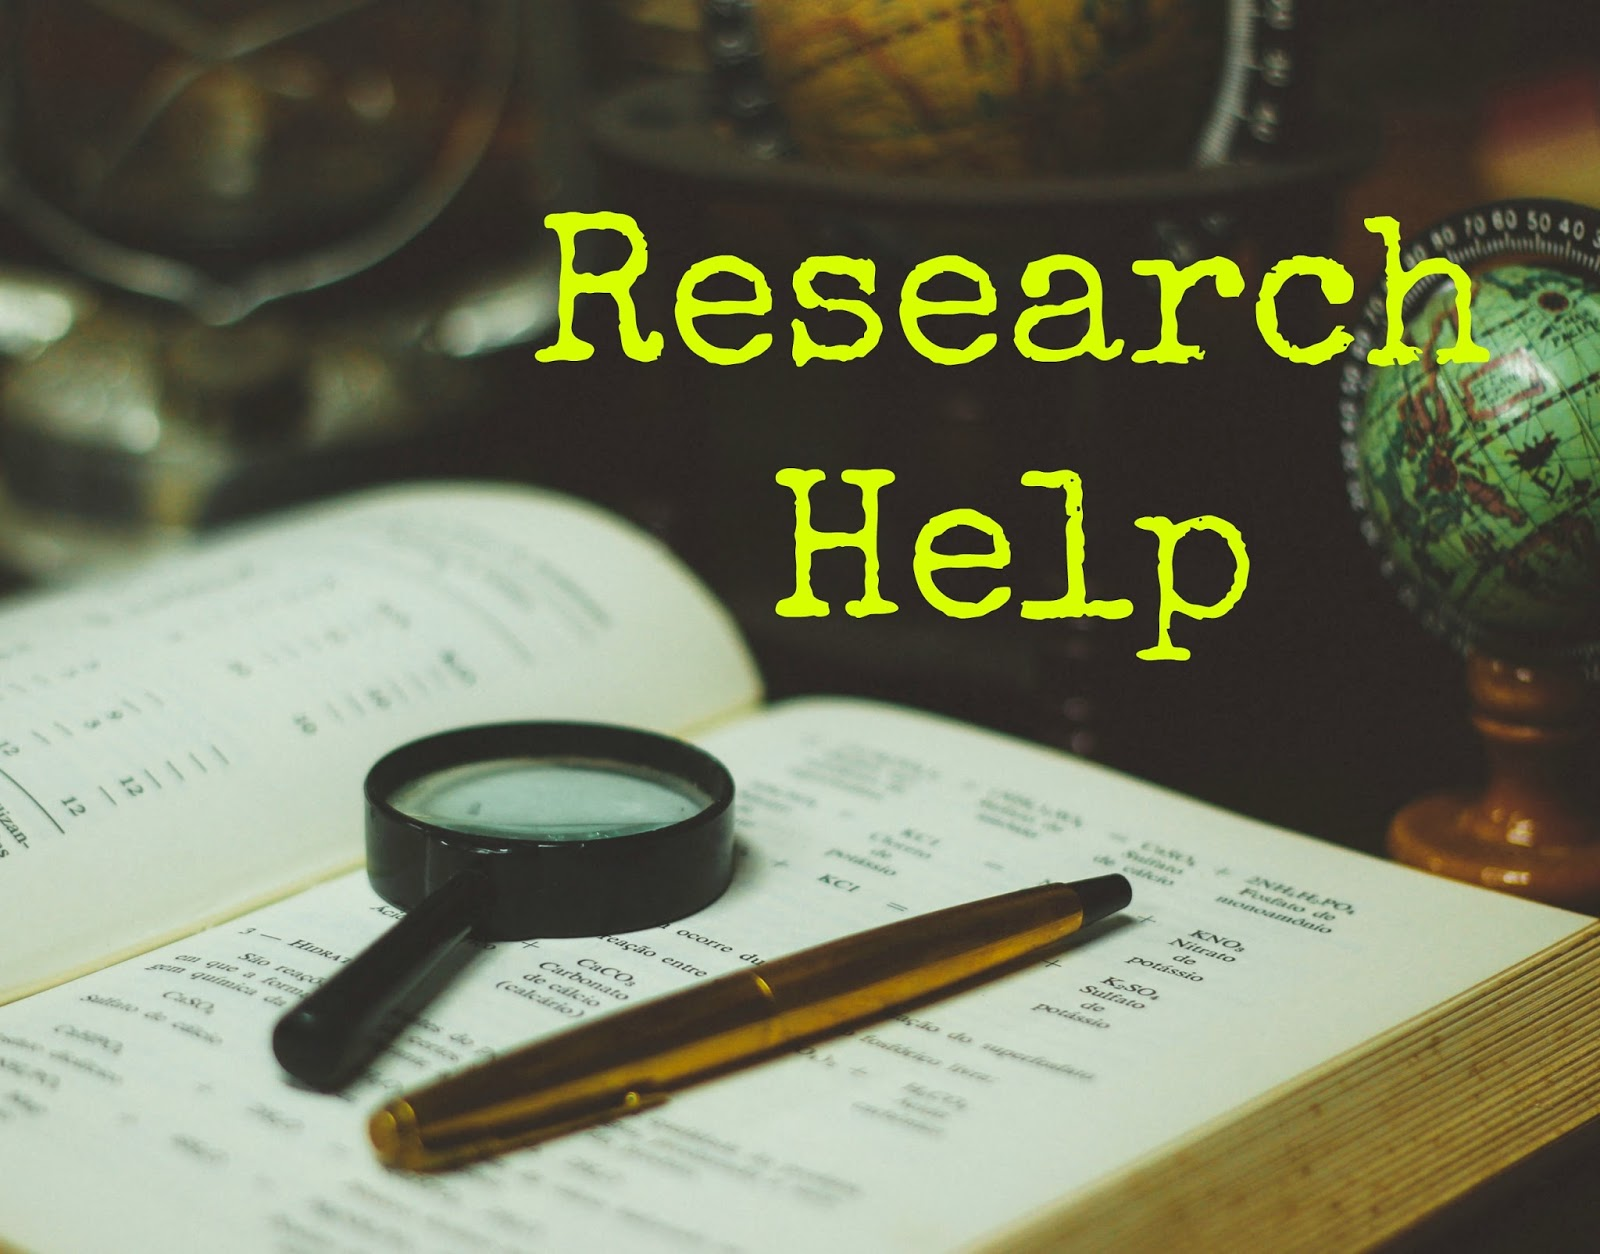 Research help